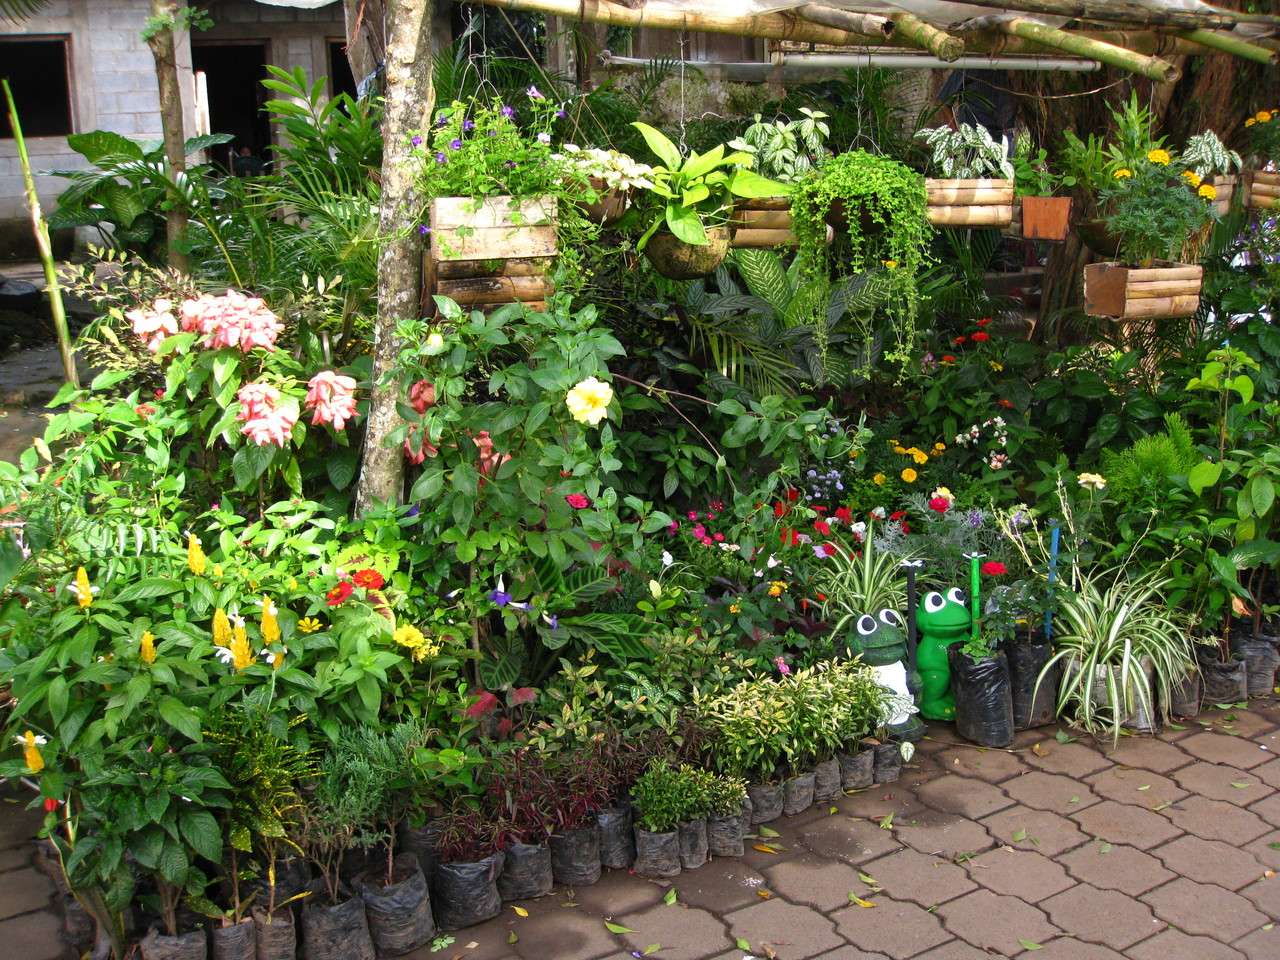 Flowers and plants shop in Catarina